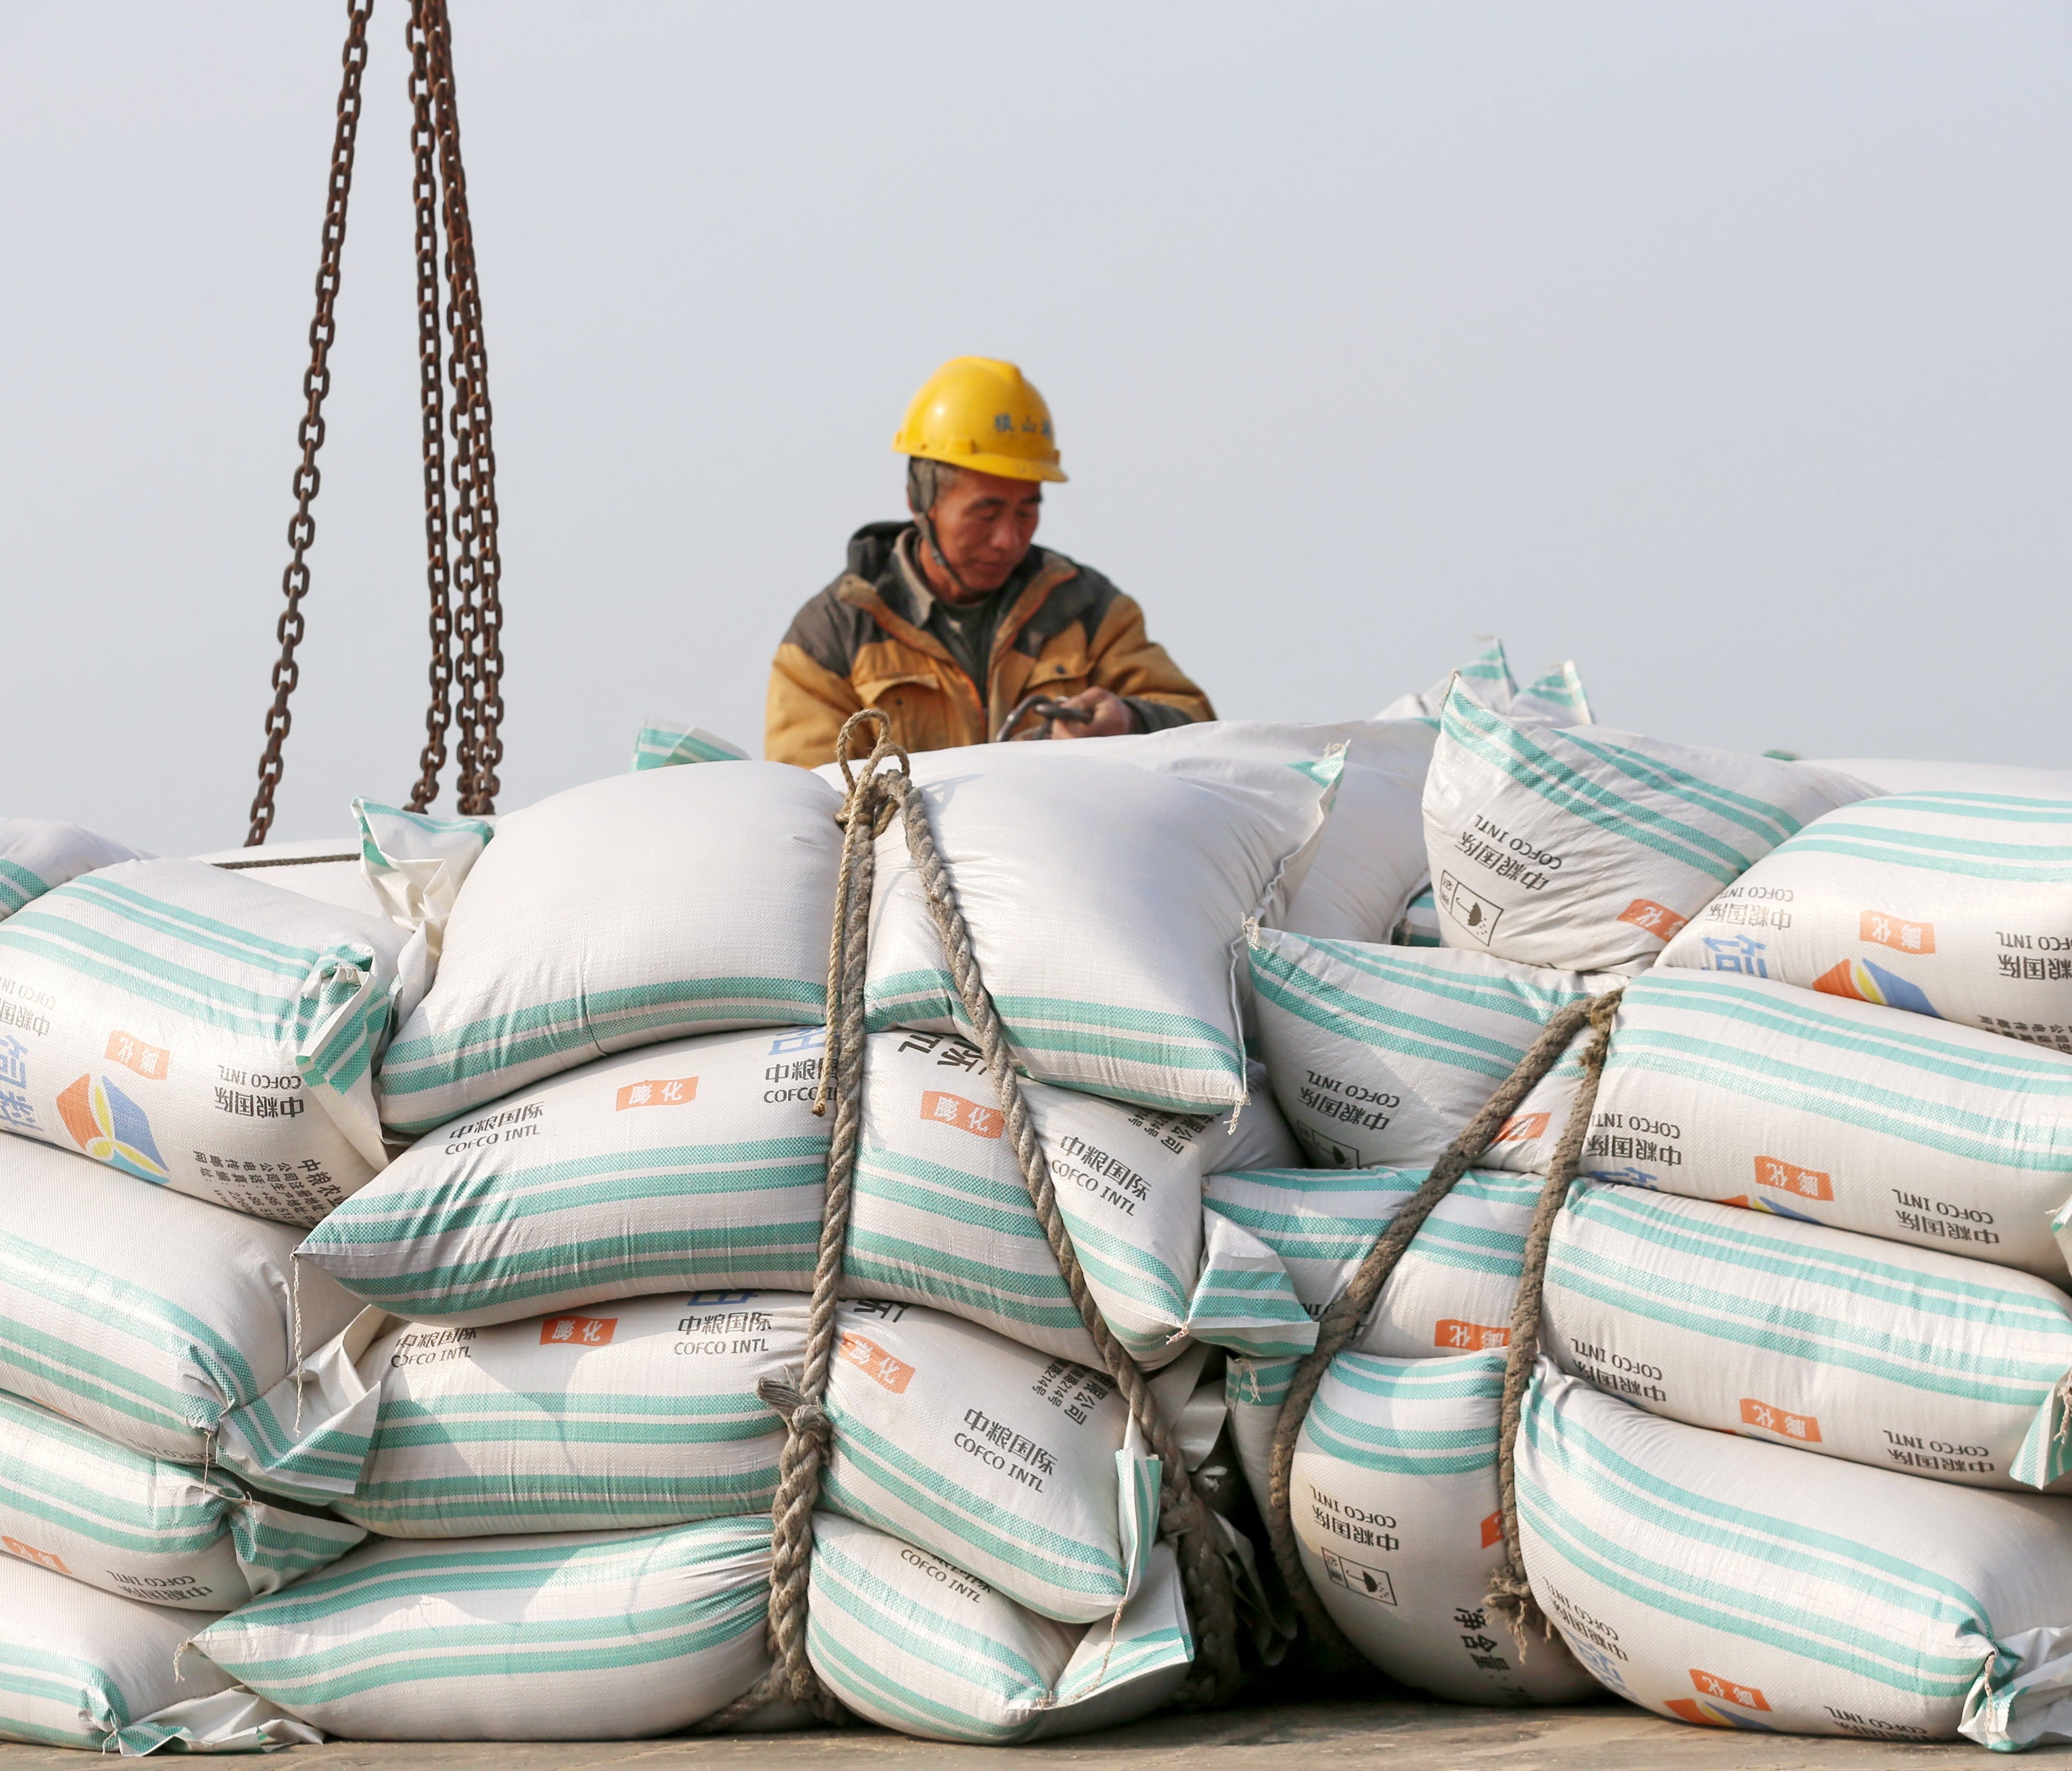 A worker moves bags of soybean meal at a port in Nantong, Jiangsu province, China, 22 March 2018 (issued 04 April 2018). China will place 25 percent tariffs on a list of 106 US goods, in a retaliatory action against the US's new tariff on Chinese pro